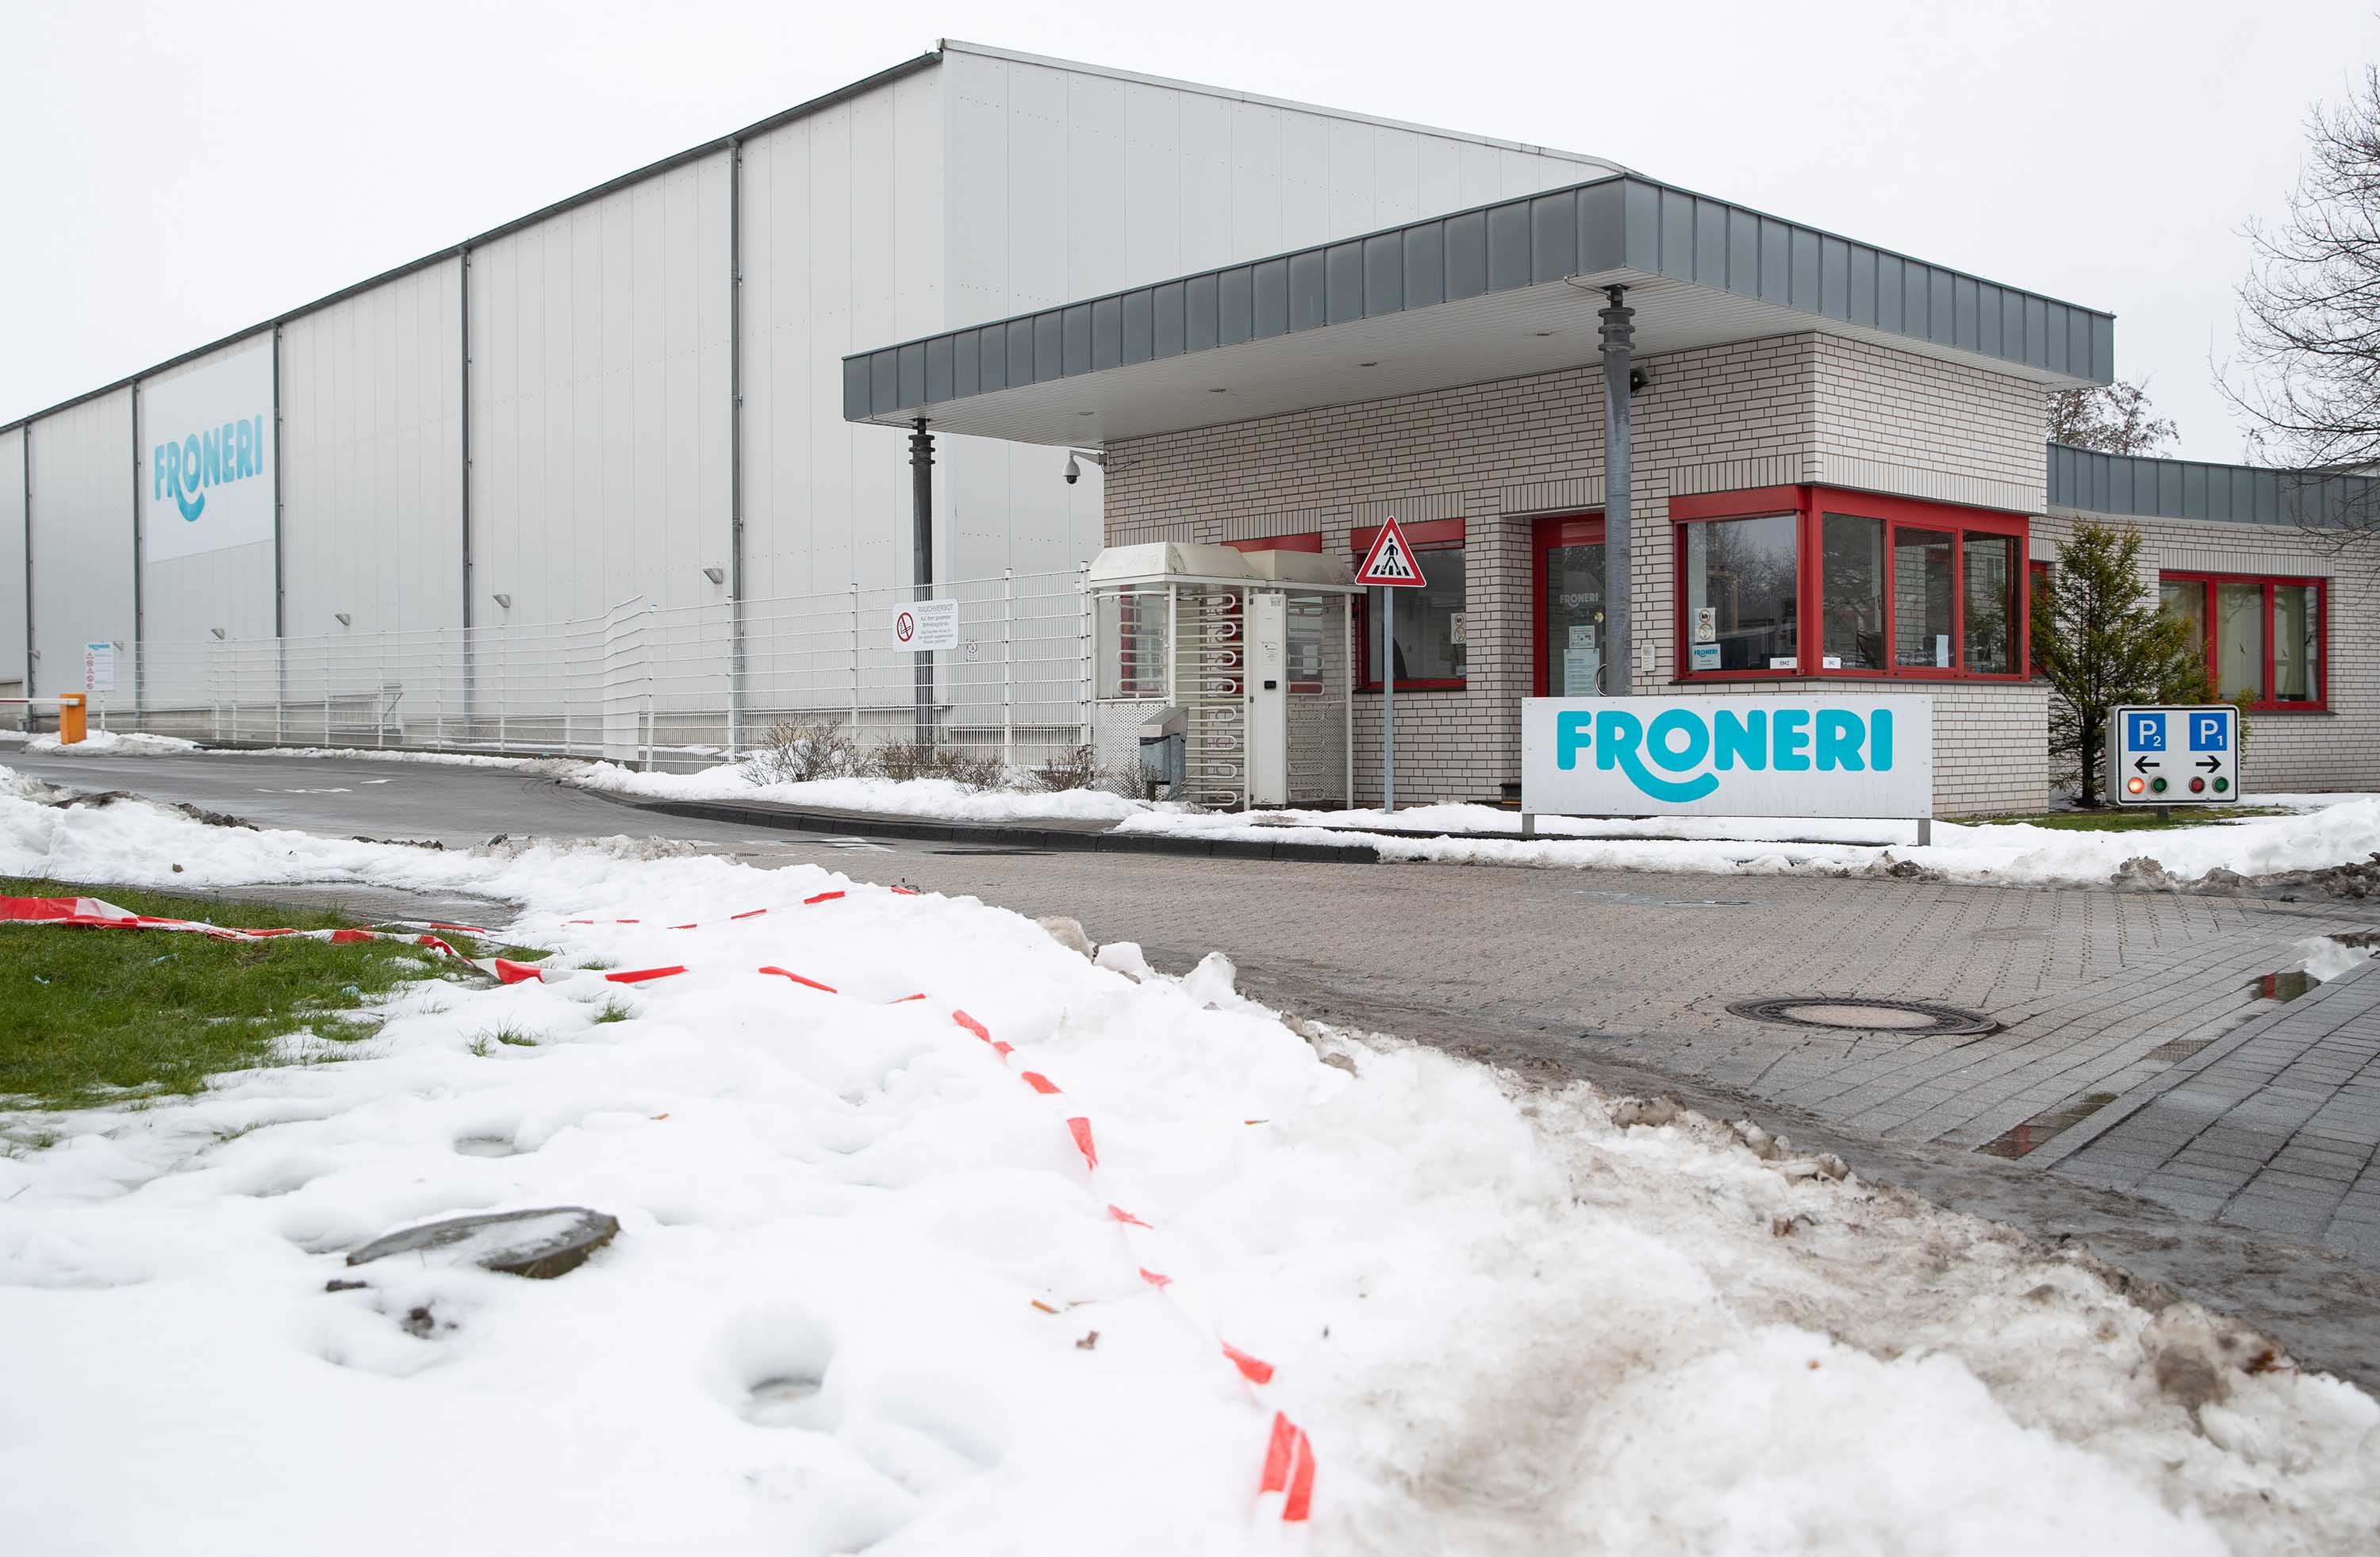 The Froneri factory is pictured on February 16 in Osnabrück, Germany.